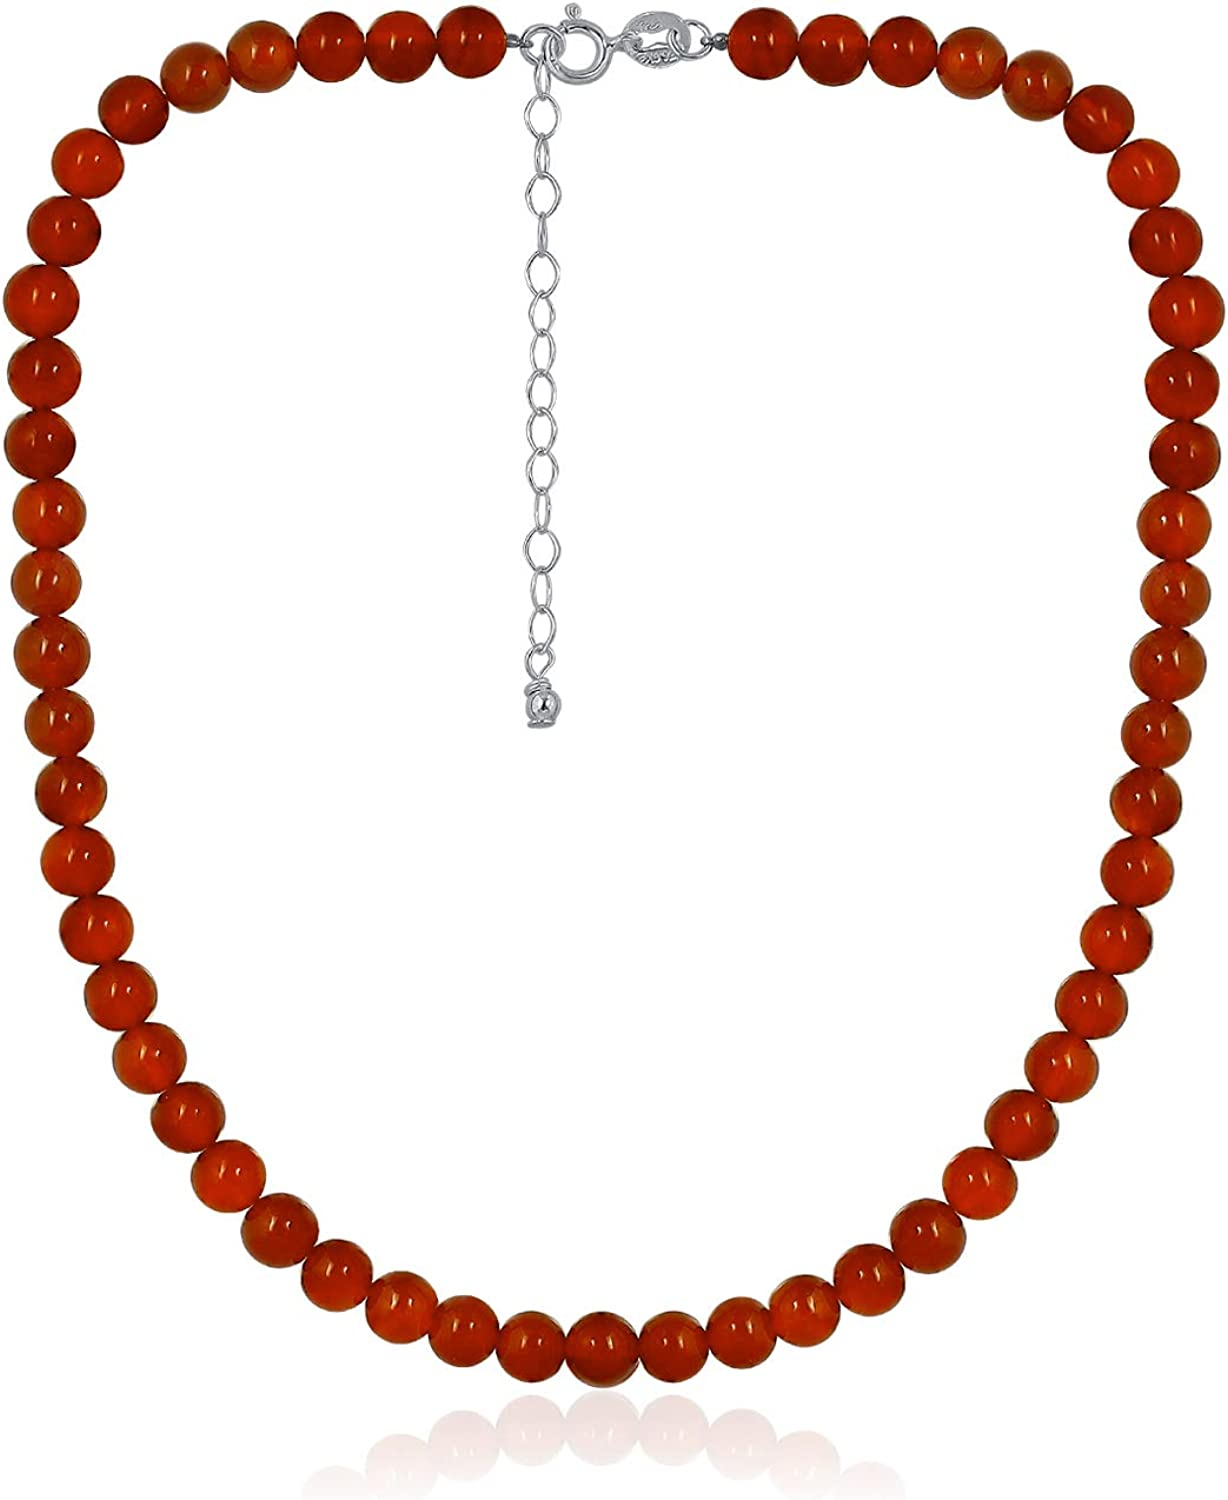 """Sea of Ice Precious Gemstone 6mm Round Beads Necklace 14"""" Plus 2"""" Extender with Sterling Silver Spring Ring Clasp"""